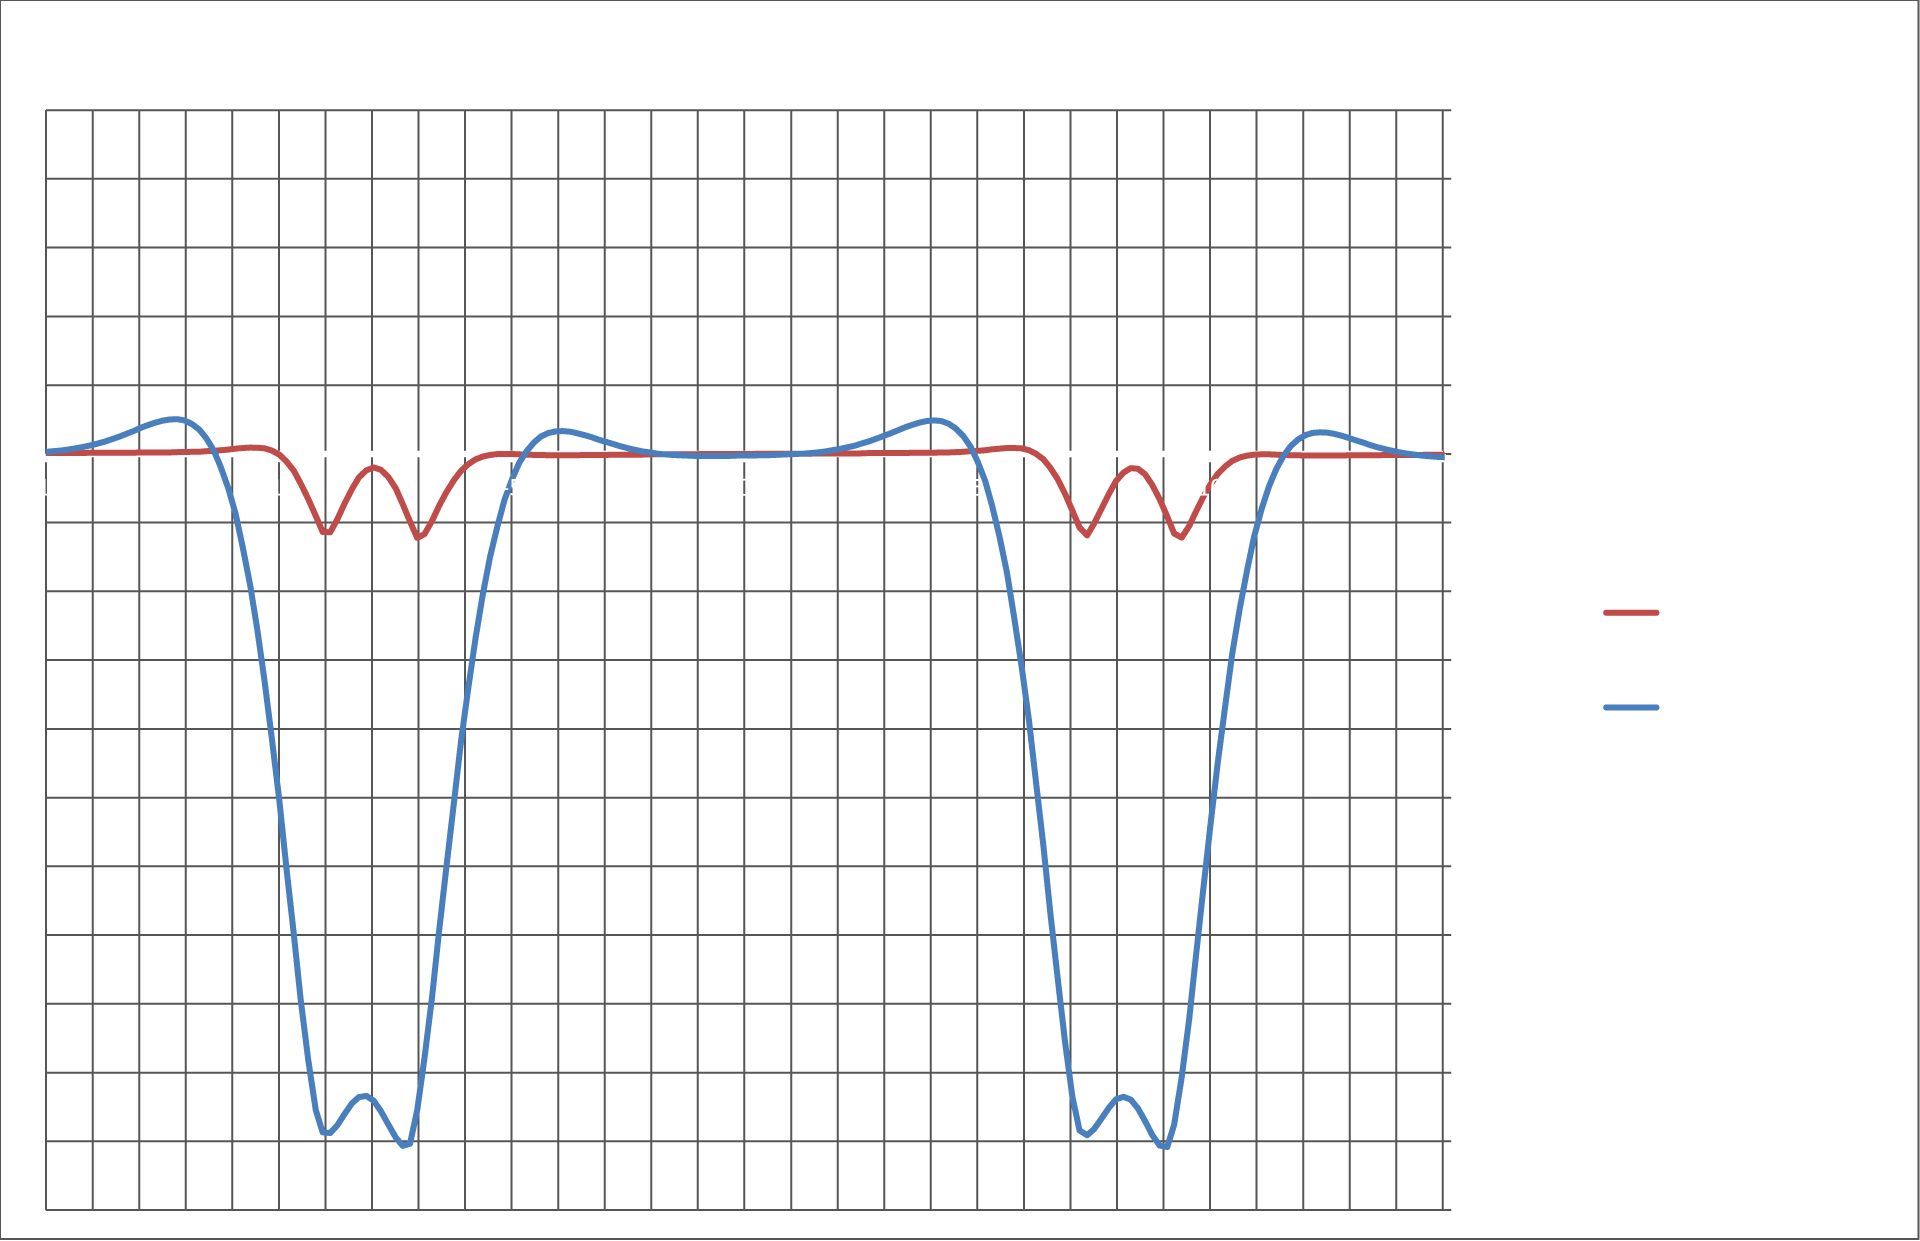 KVDT malaysia dynamic displacement